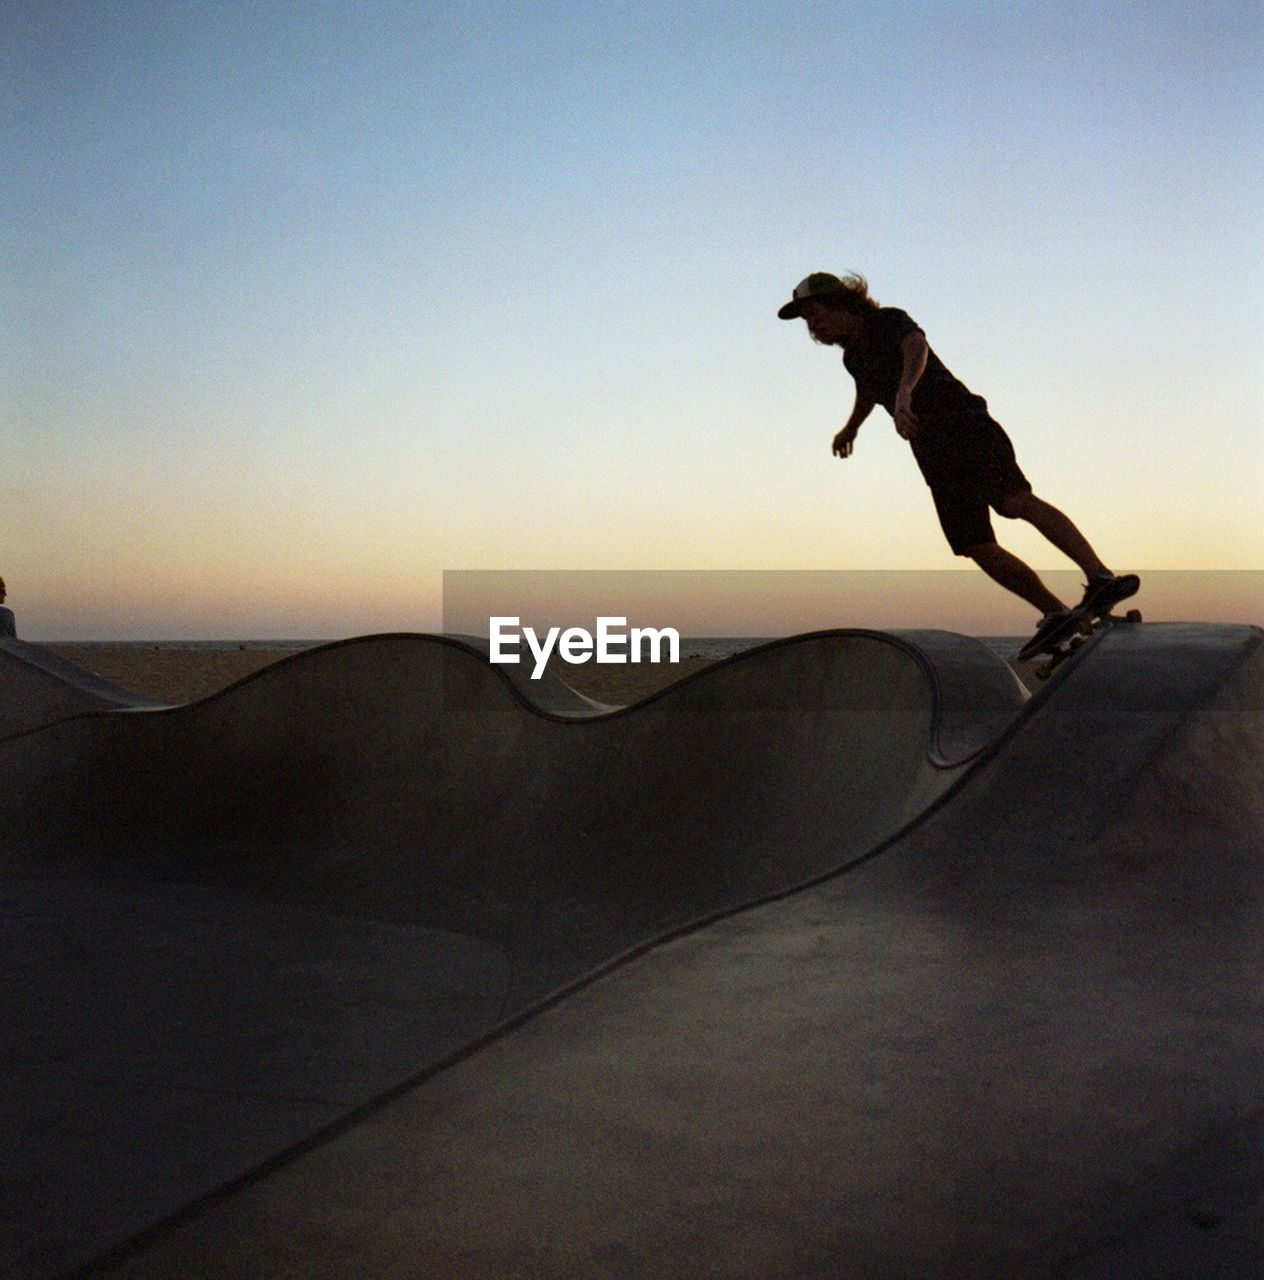 full length, jumping, one person, silhouette, outdoors, leisure activity, mid-air, adventure, fun, sunset, men, nature, skill, real people, skateboard park, clear sky, extreme sports, vacations, landscape, day, stunt, lifestyles, sport, sky, energetic, one man only, sand dune, young adult, people, adult